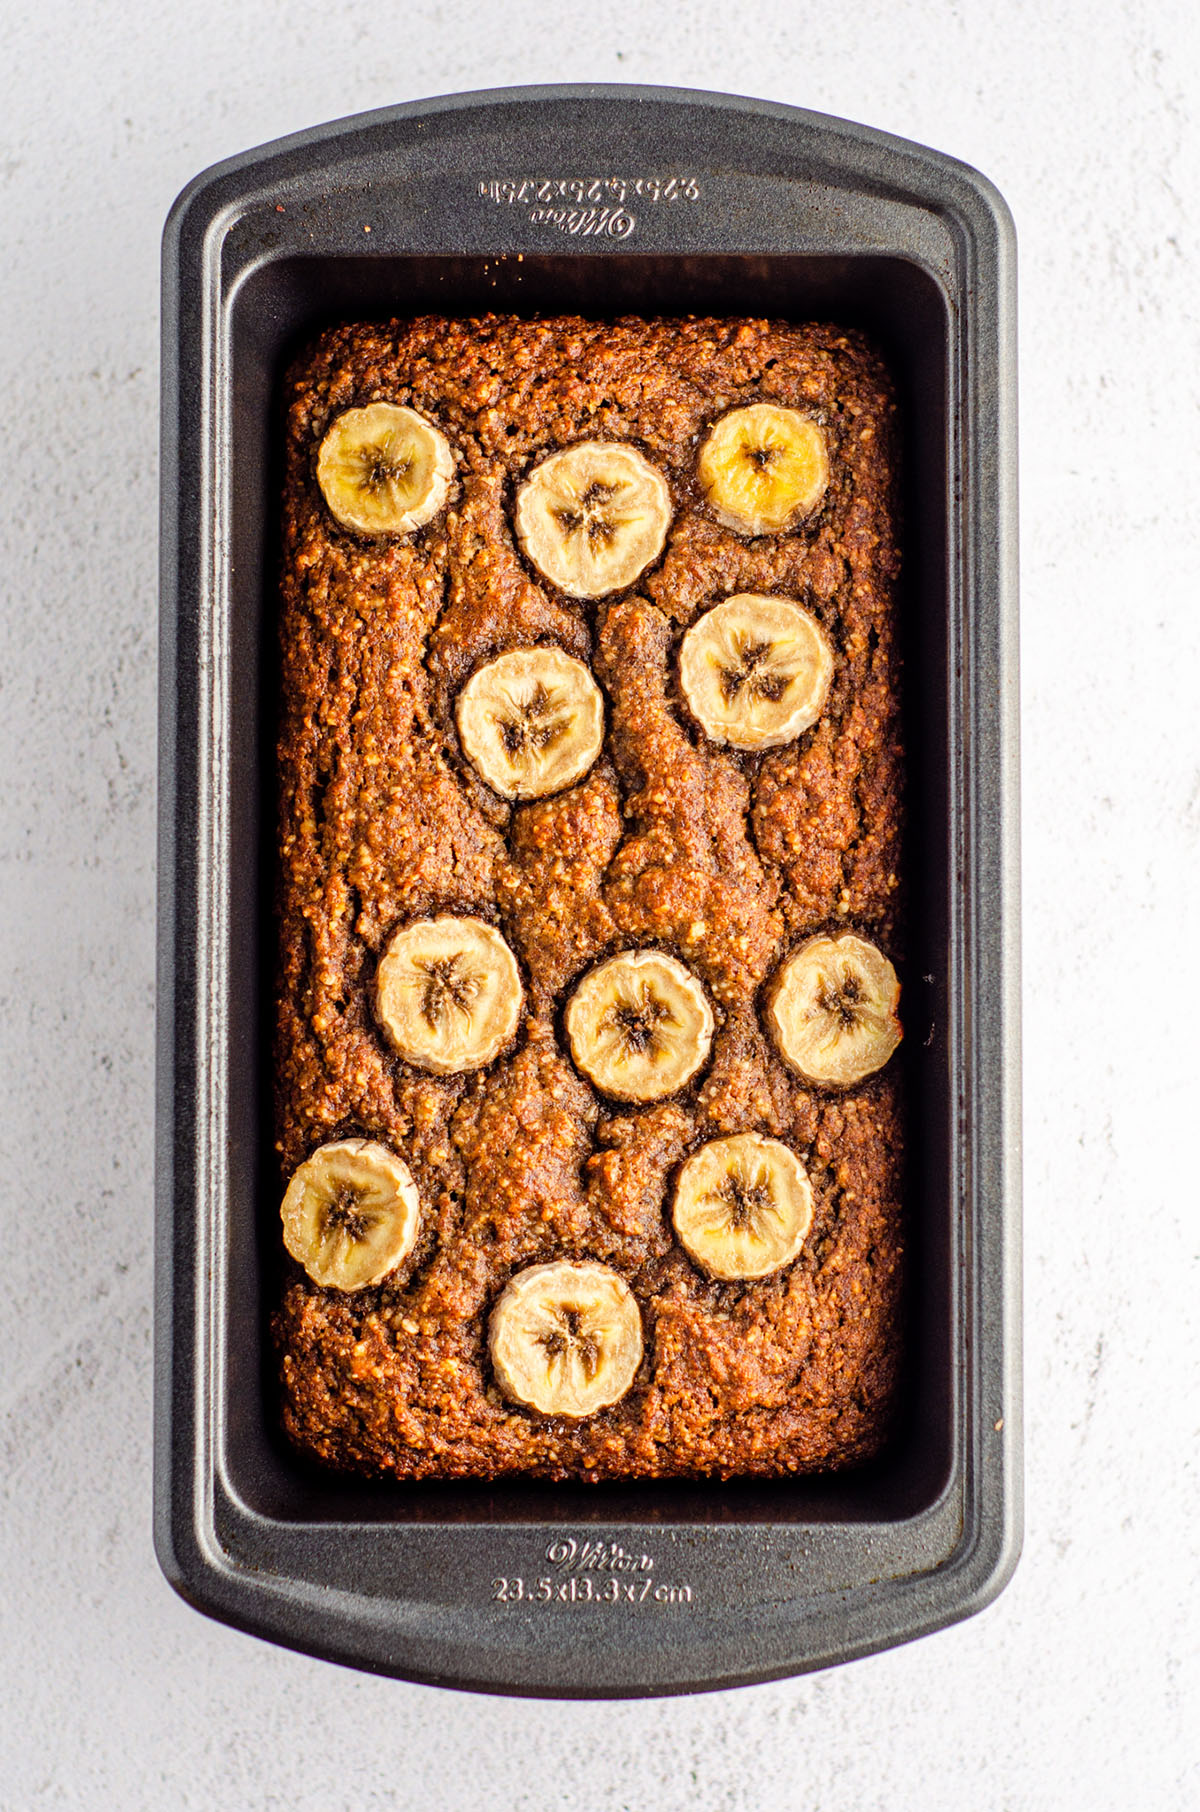 almond flour banana bread baked in a loaf pan with banana slices baked into the top